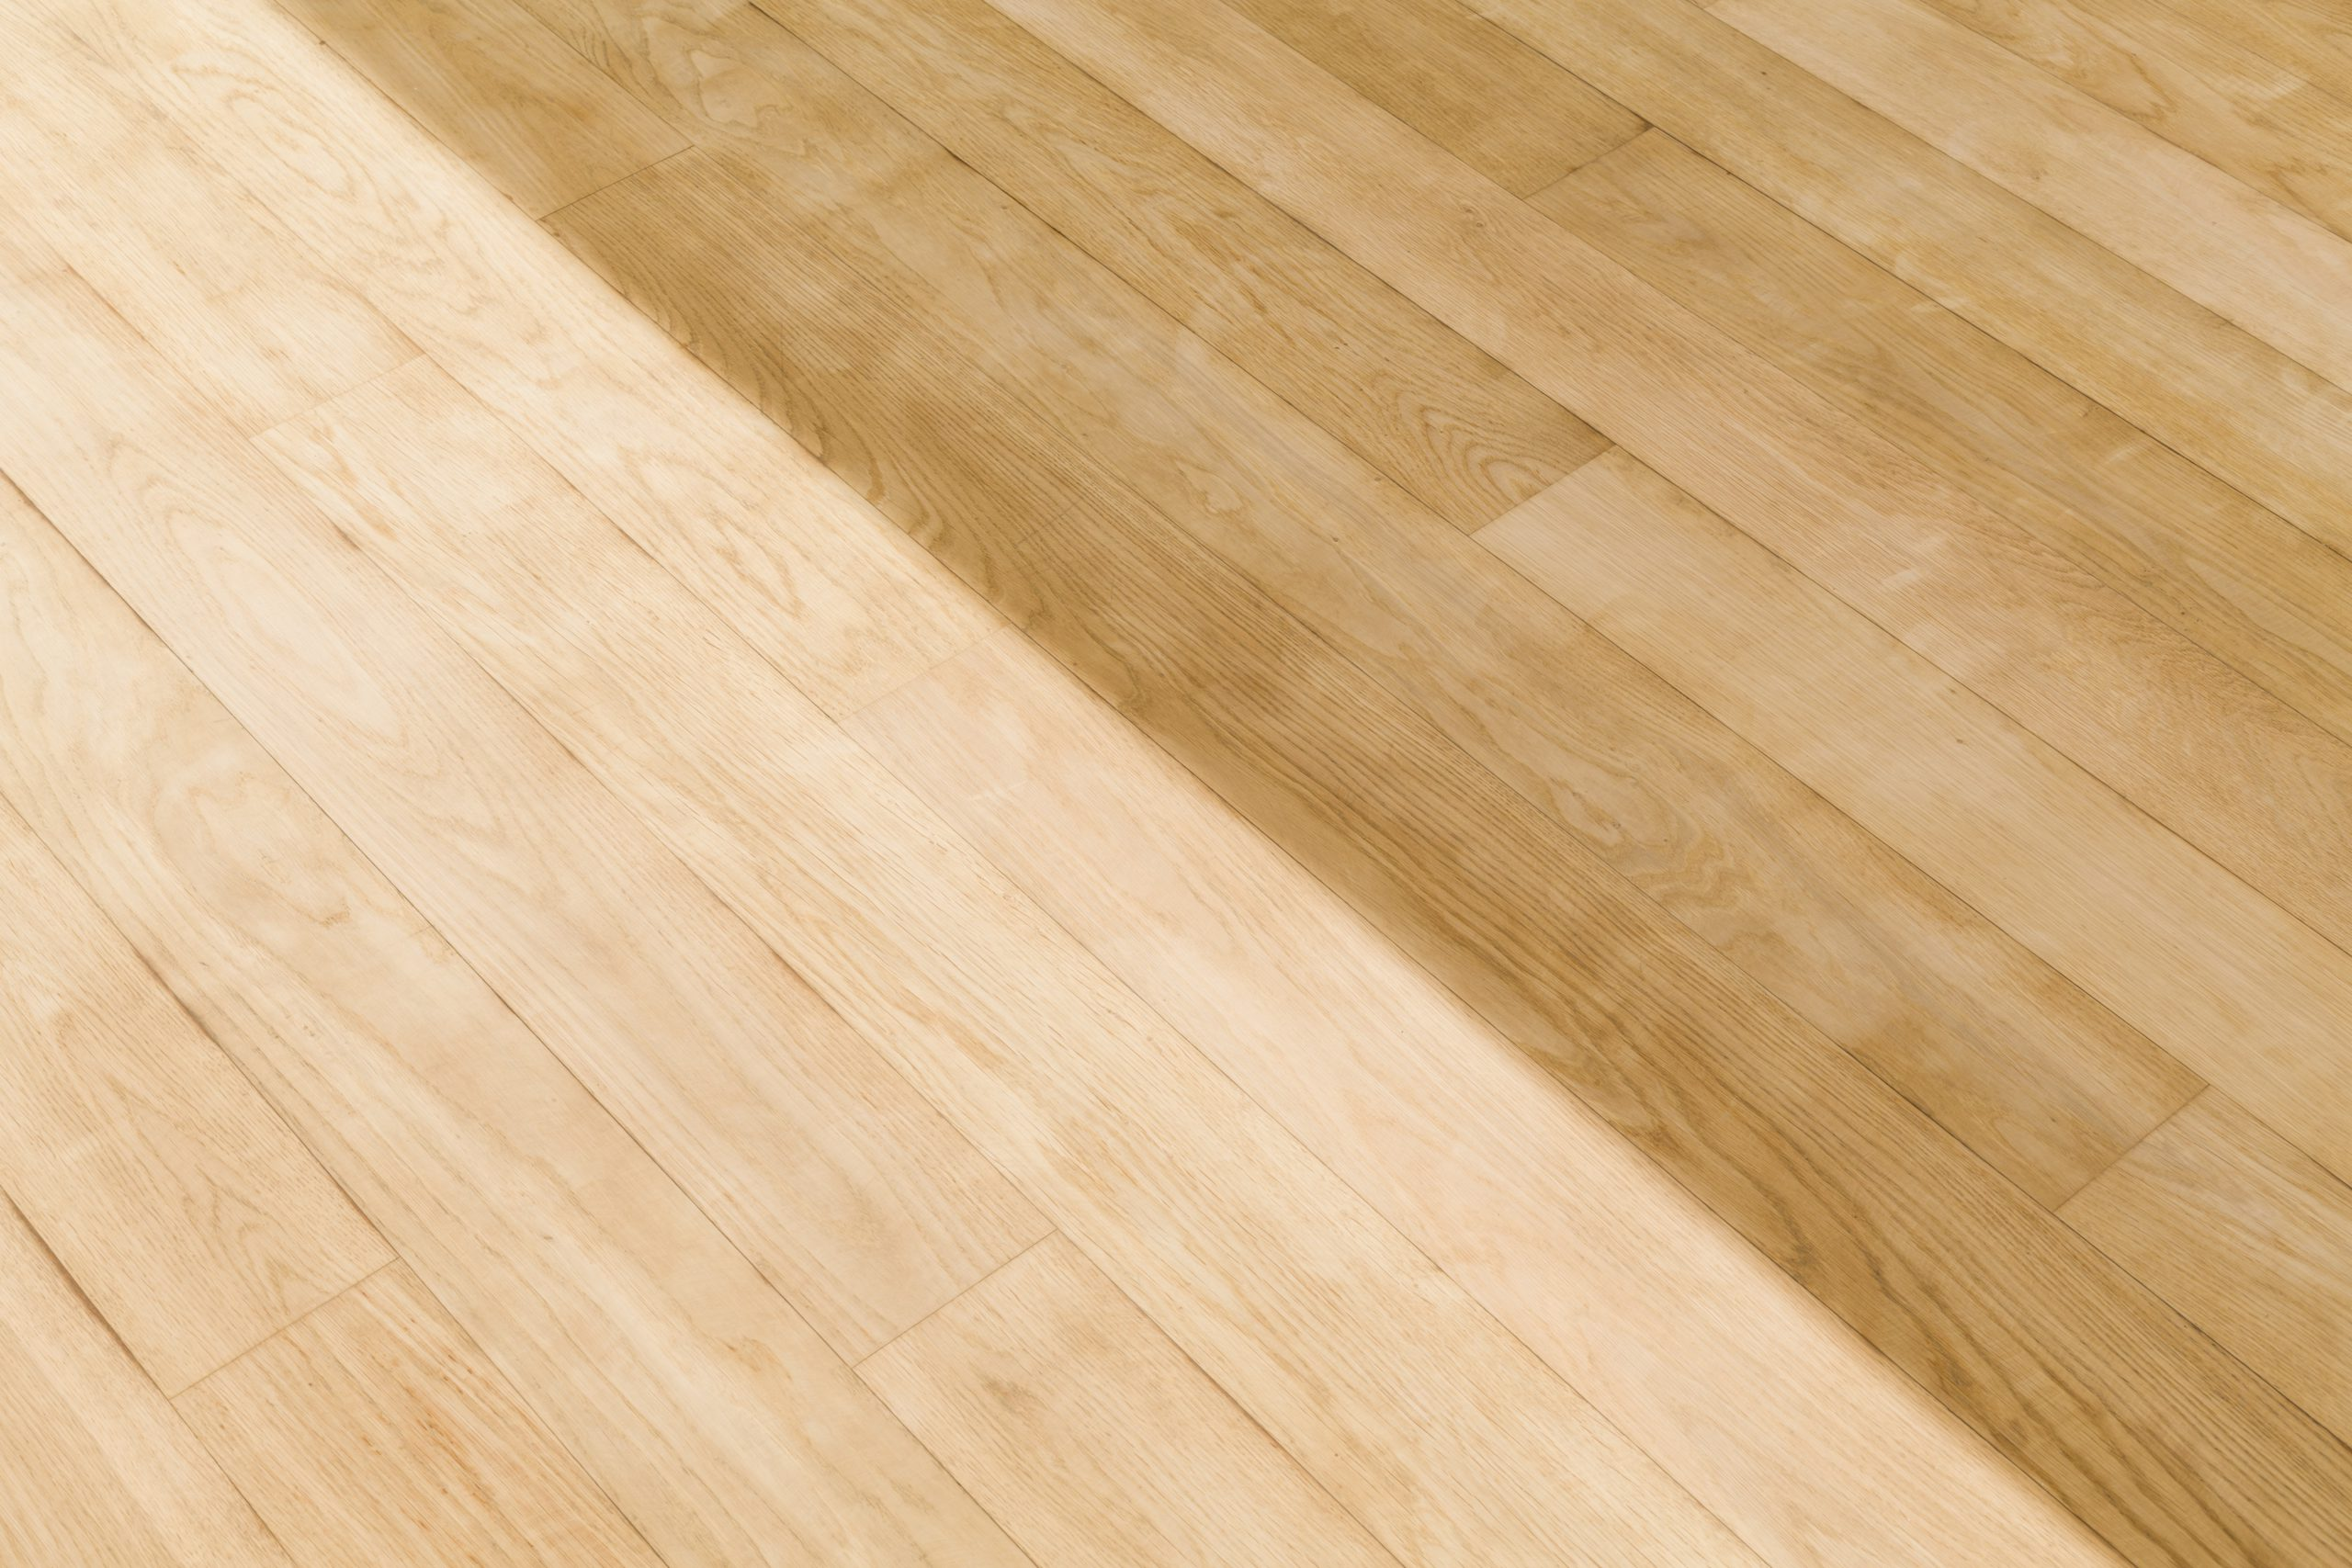 sanding-hardwood-floors-staining-hardwood-floors